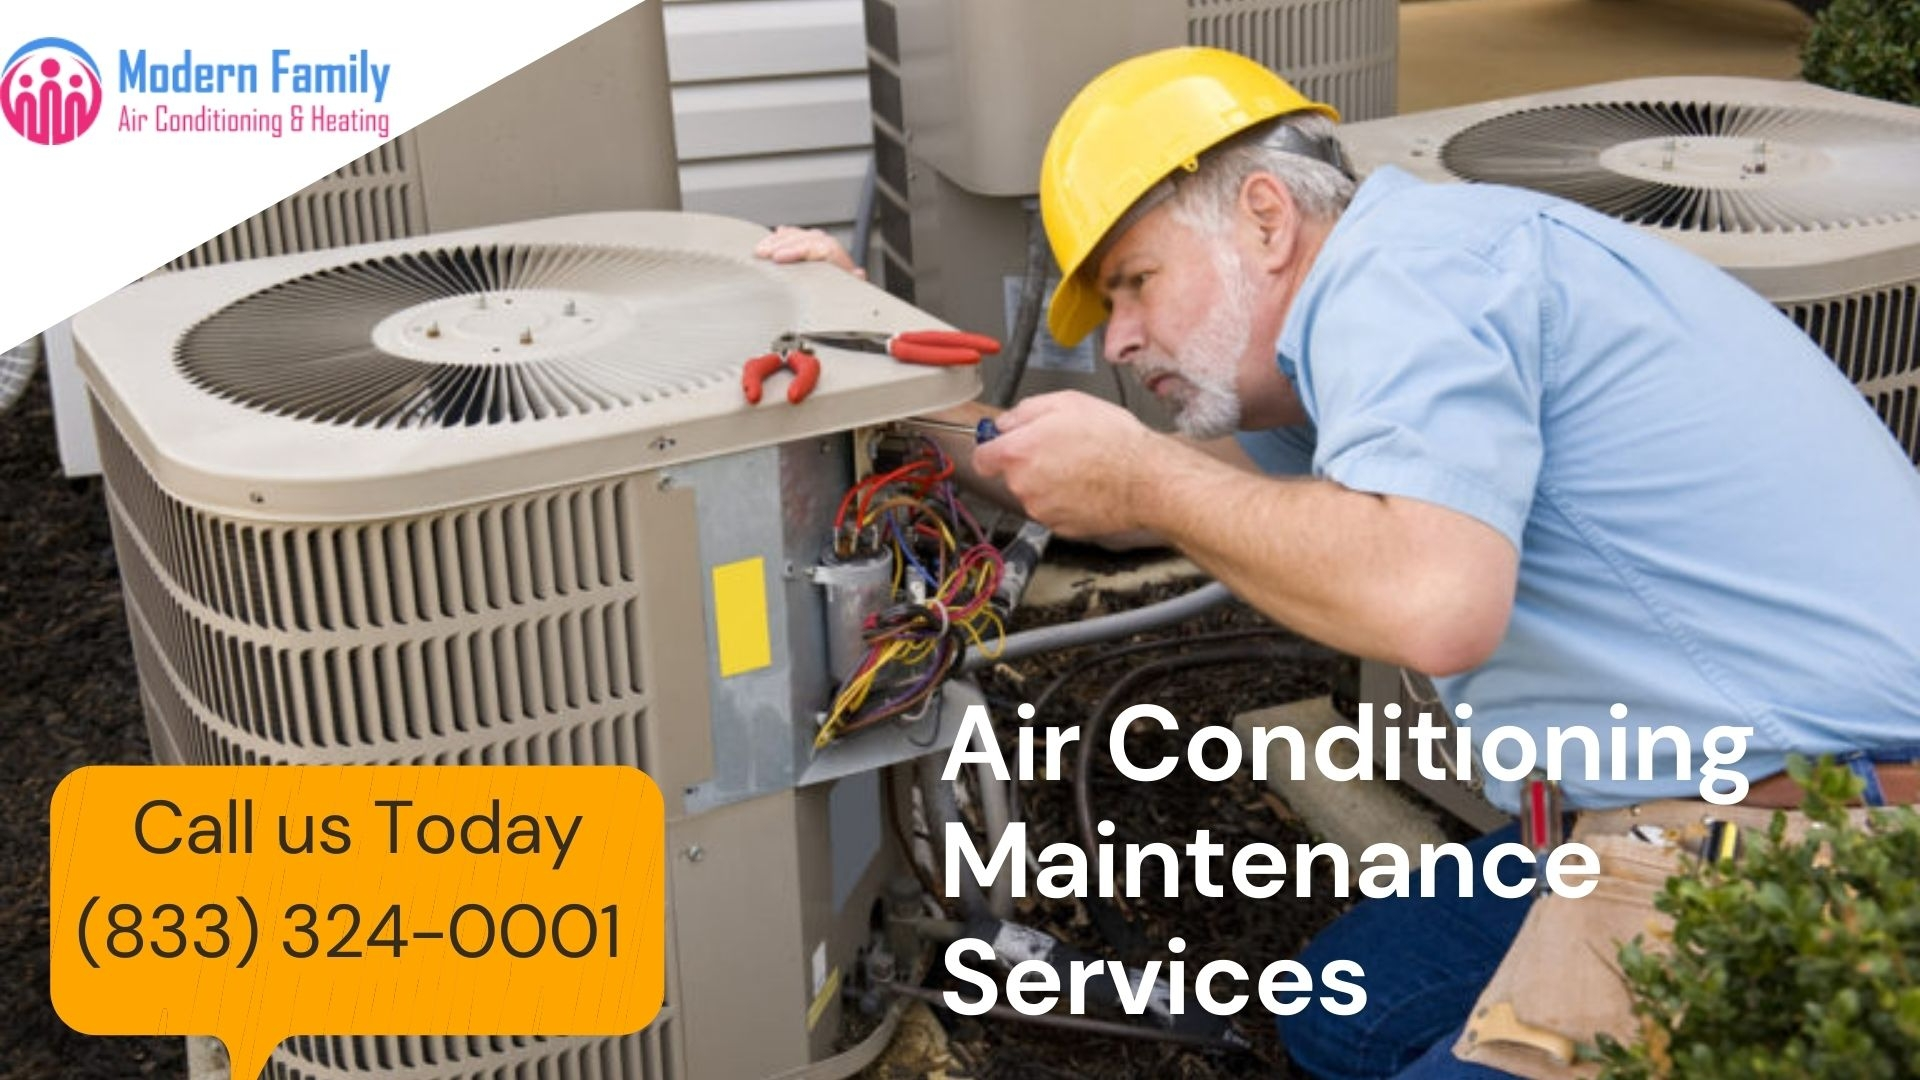 Modern Family Air Conditioning & Heating (@modernfamilyairconditioning) Cover Image